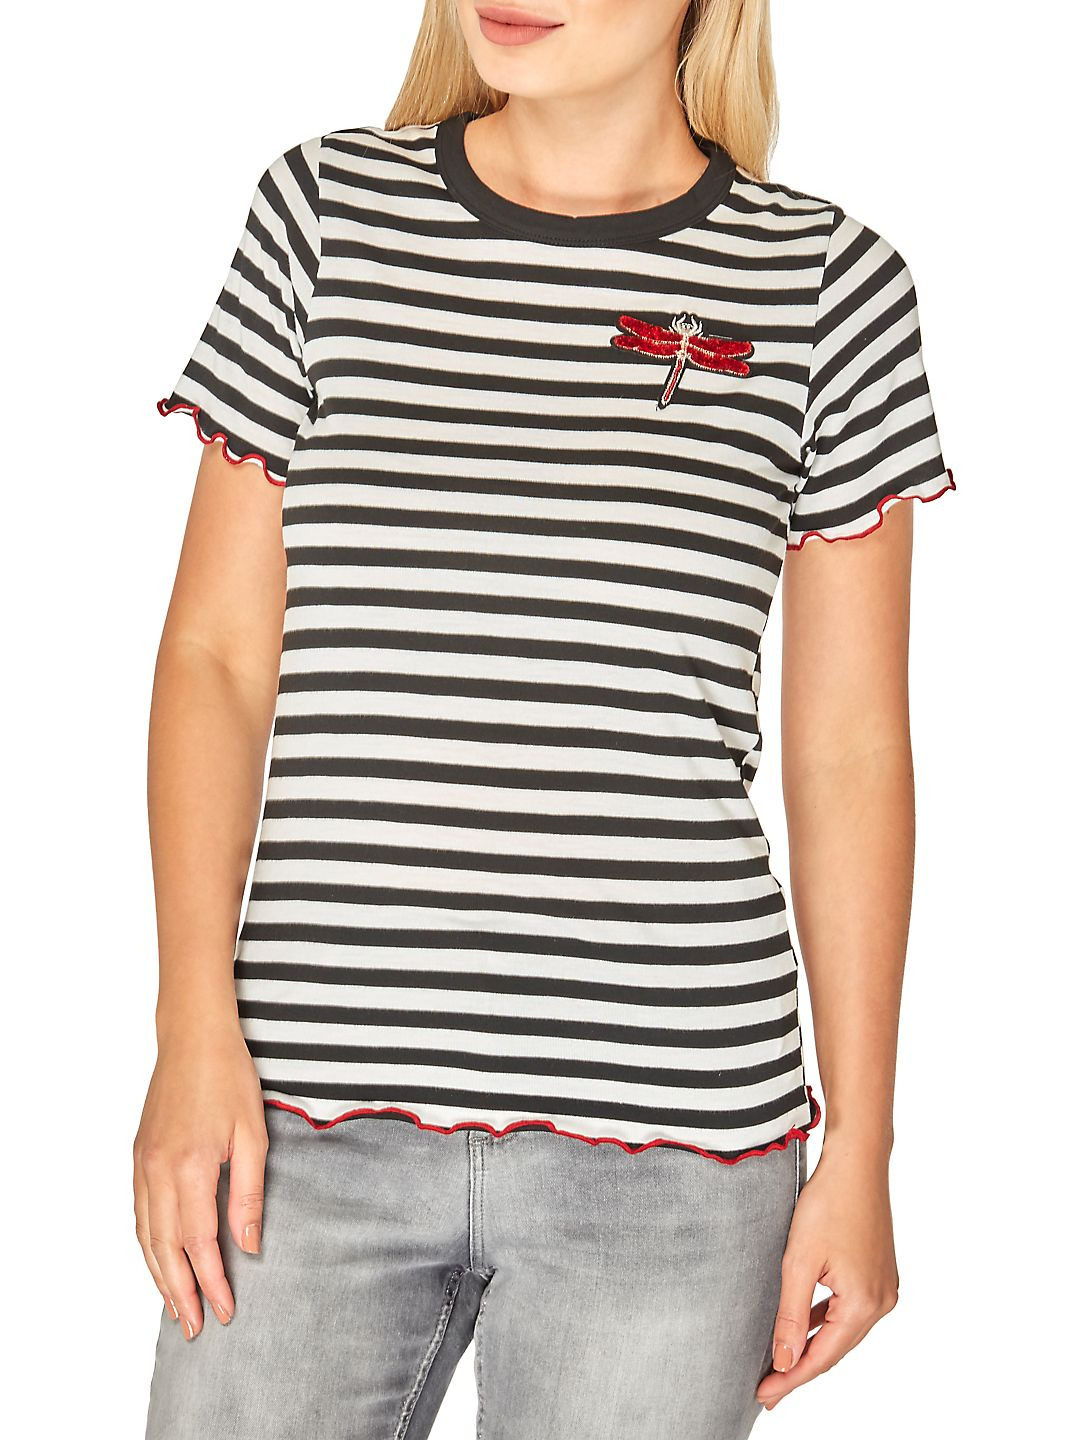 Dragonfly Striped Tee